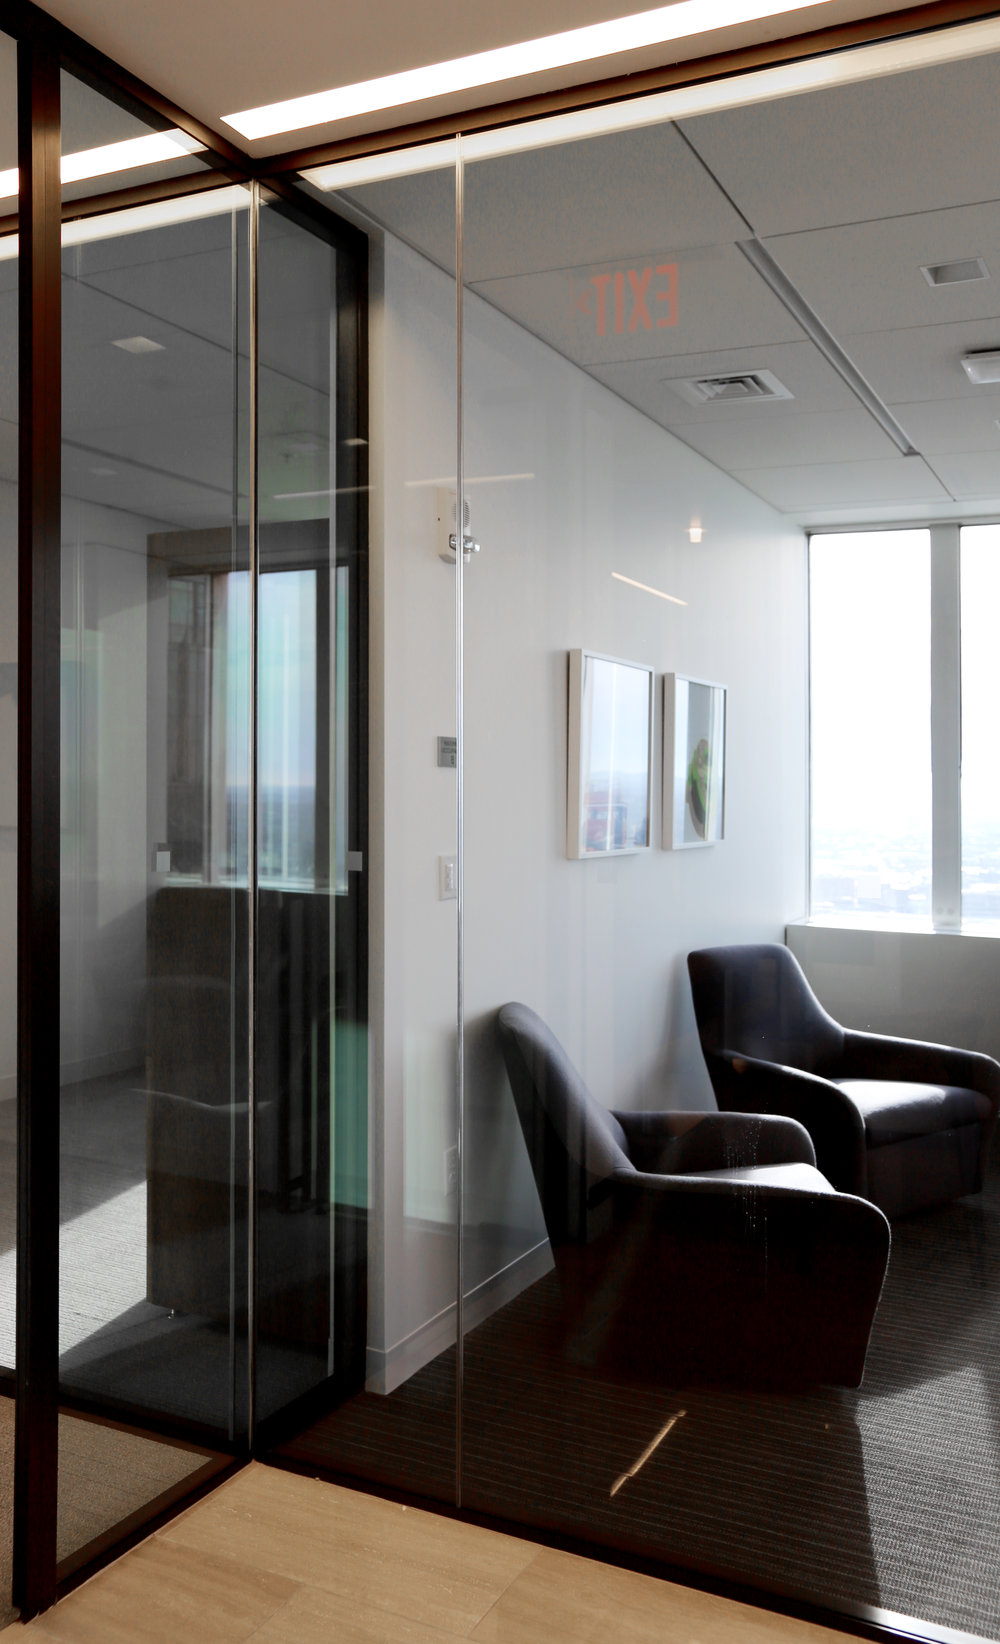 Modernus Aluminum Framed Glass Corner Condition - Spaceworks AI.jpg